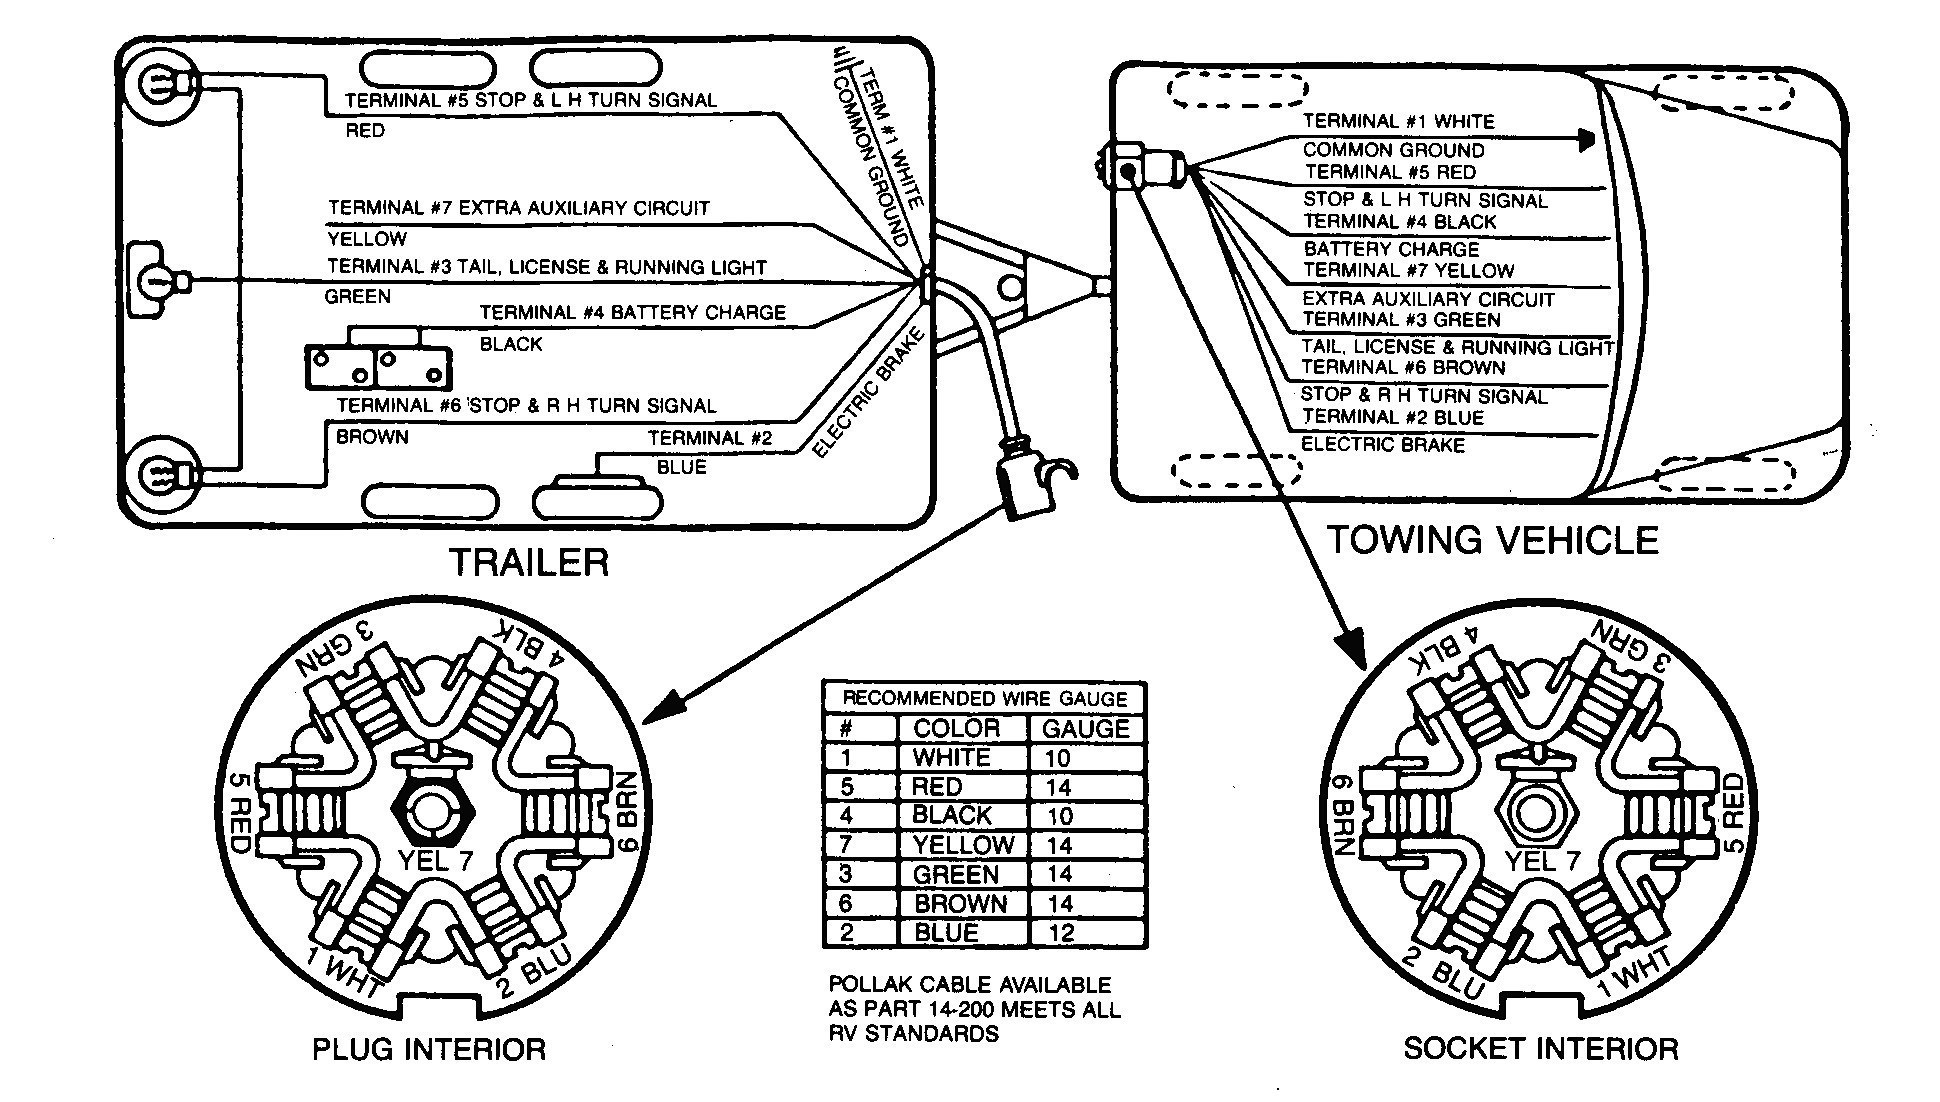 Rv 7 Plug Wiring Diagram | Wiring Diagram - 7-Way Trailer Plug Wiring Diagram